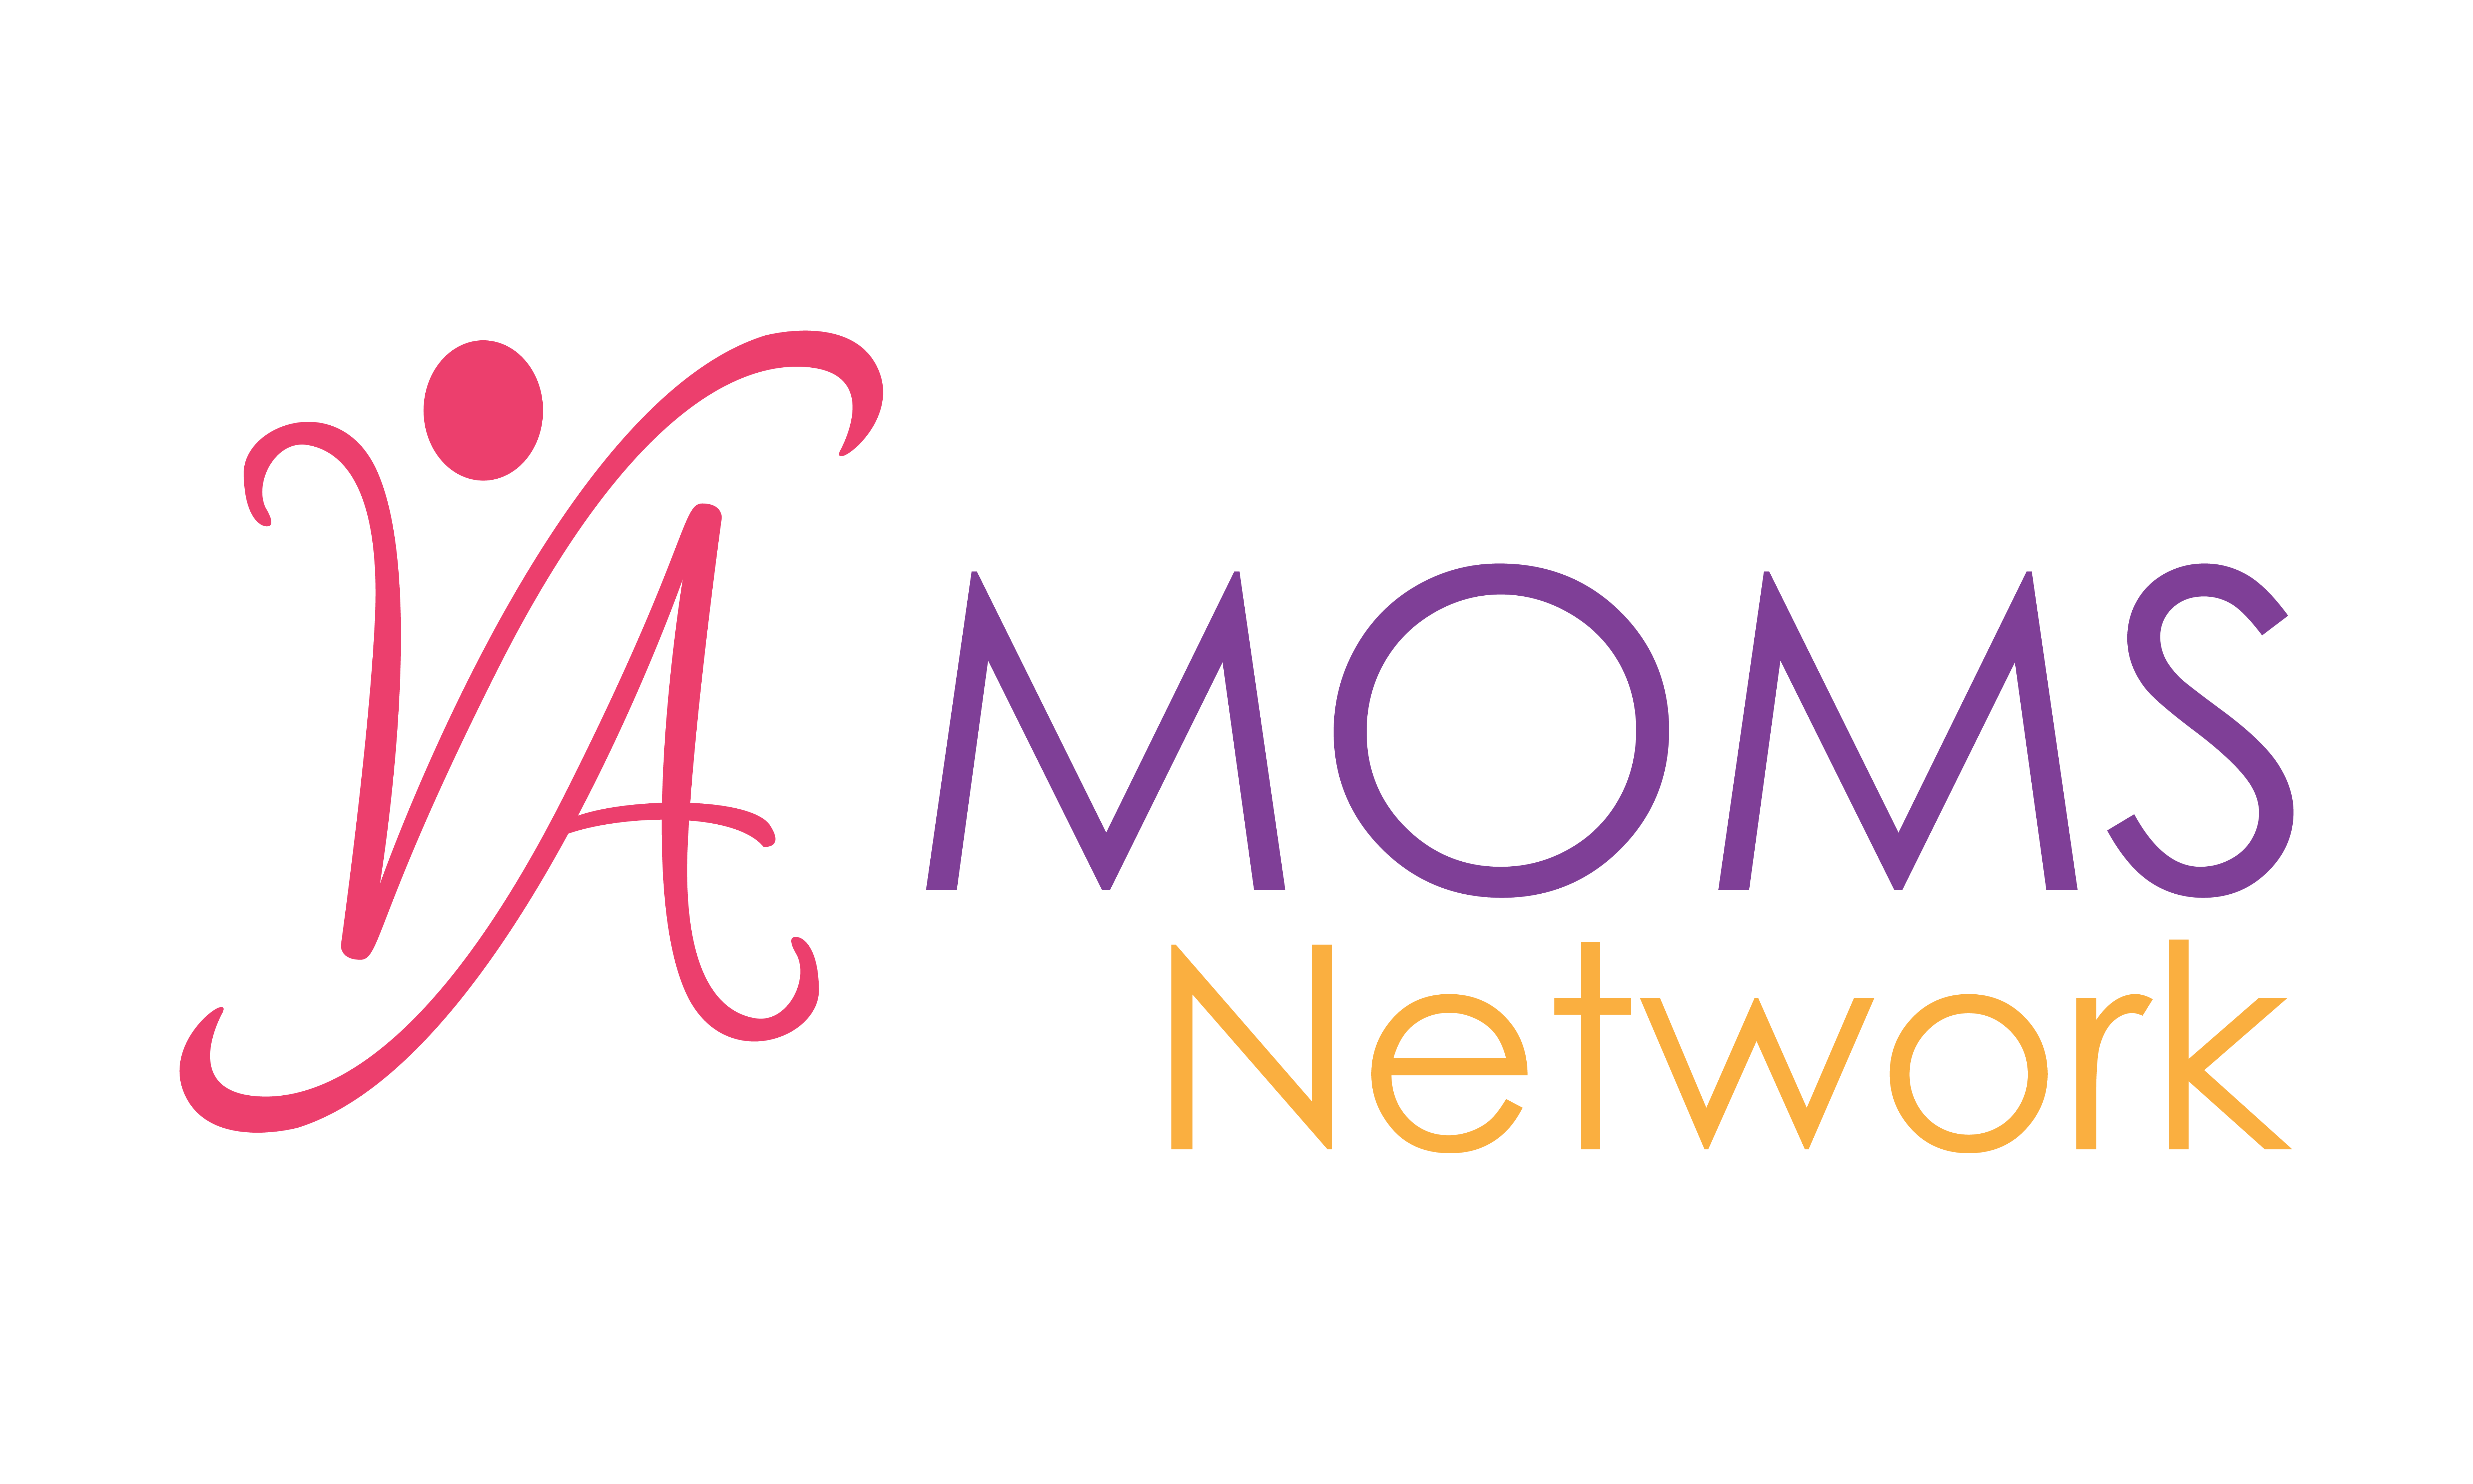 Footer Logo: VA Moms Network